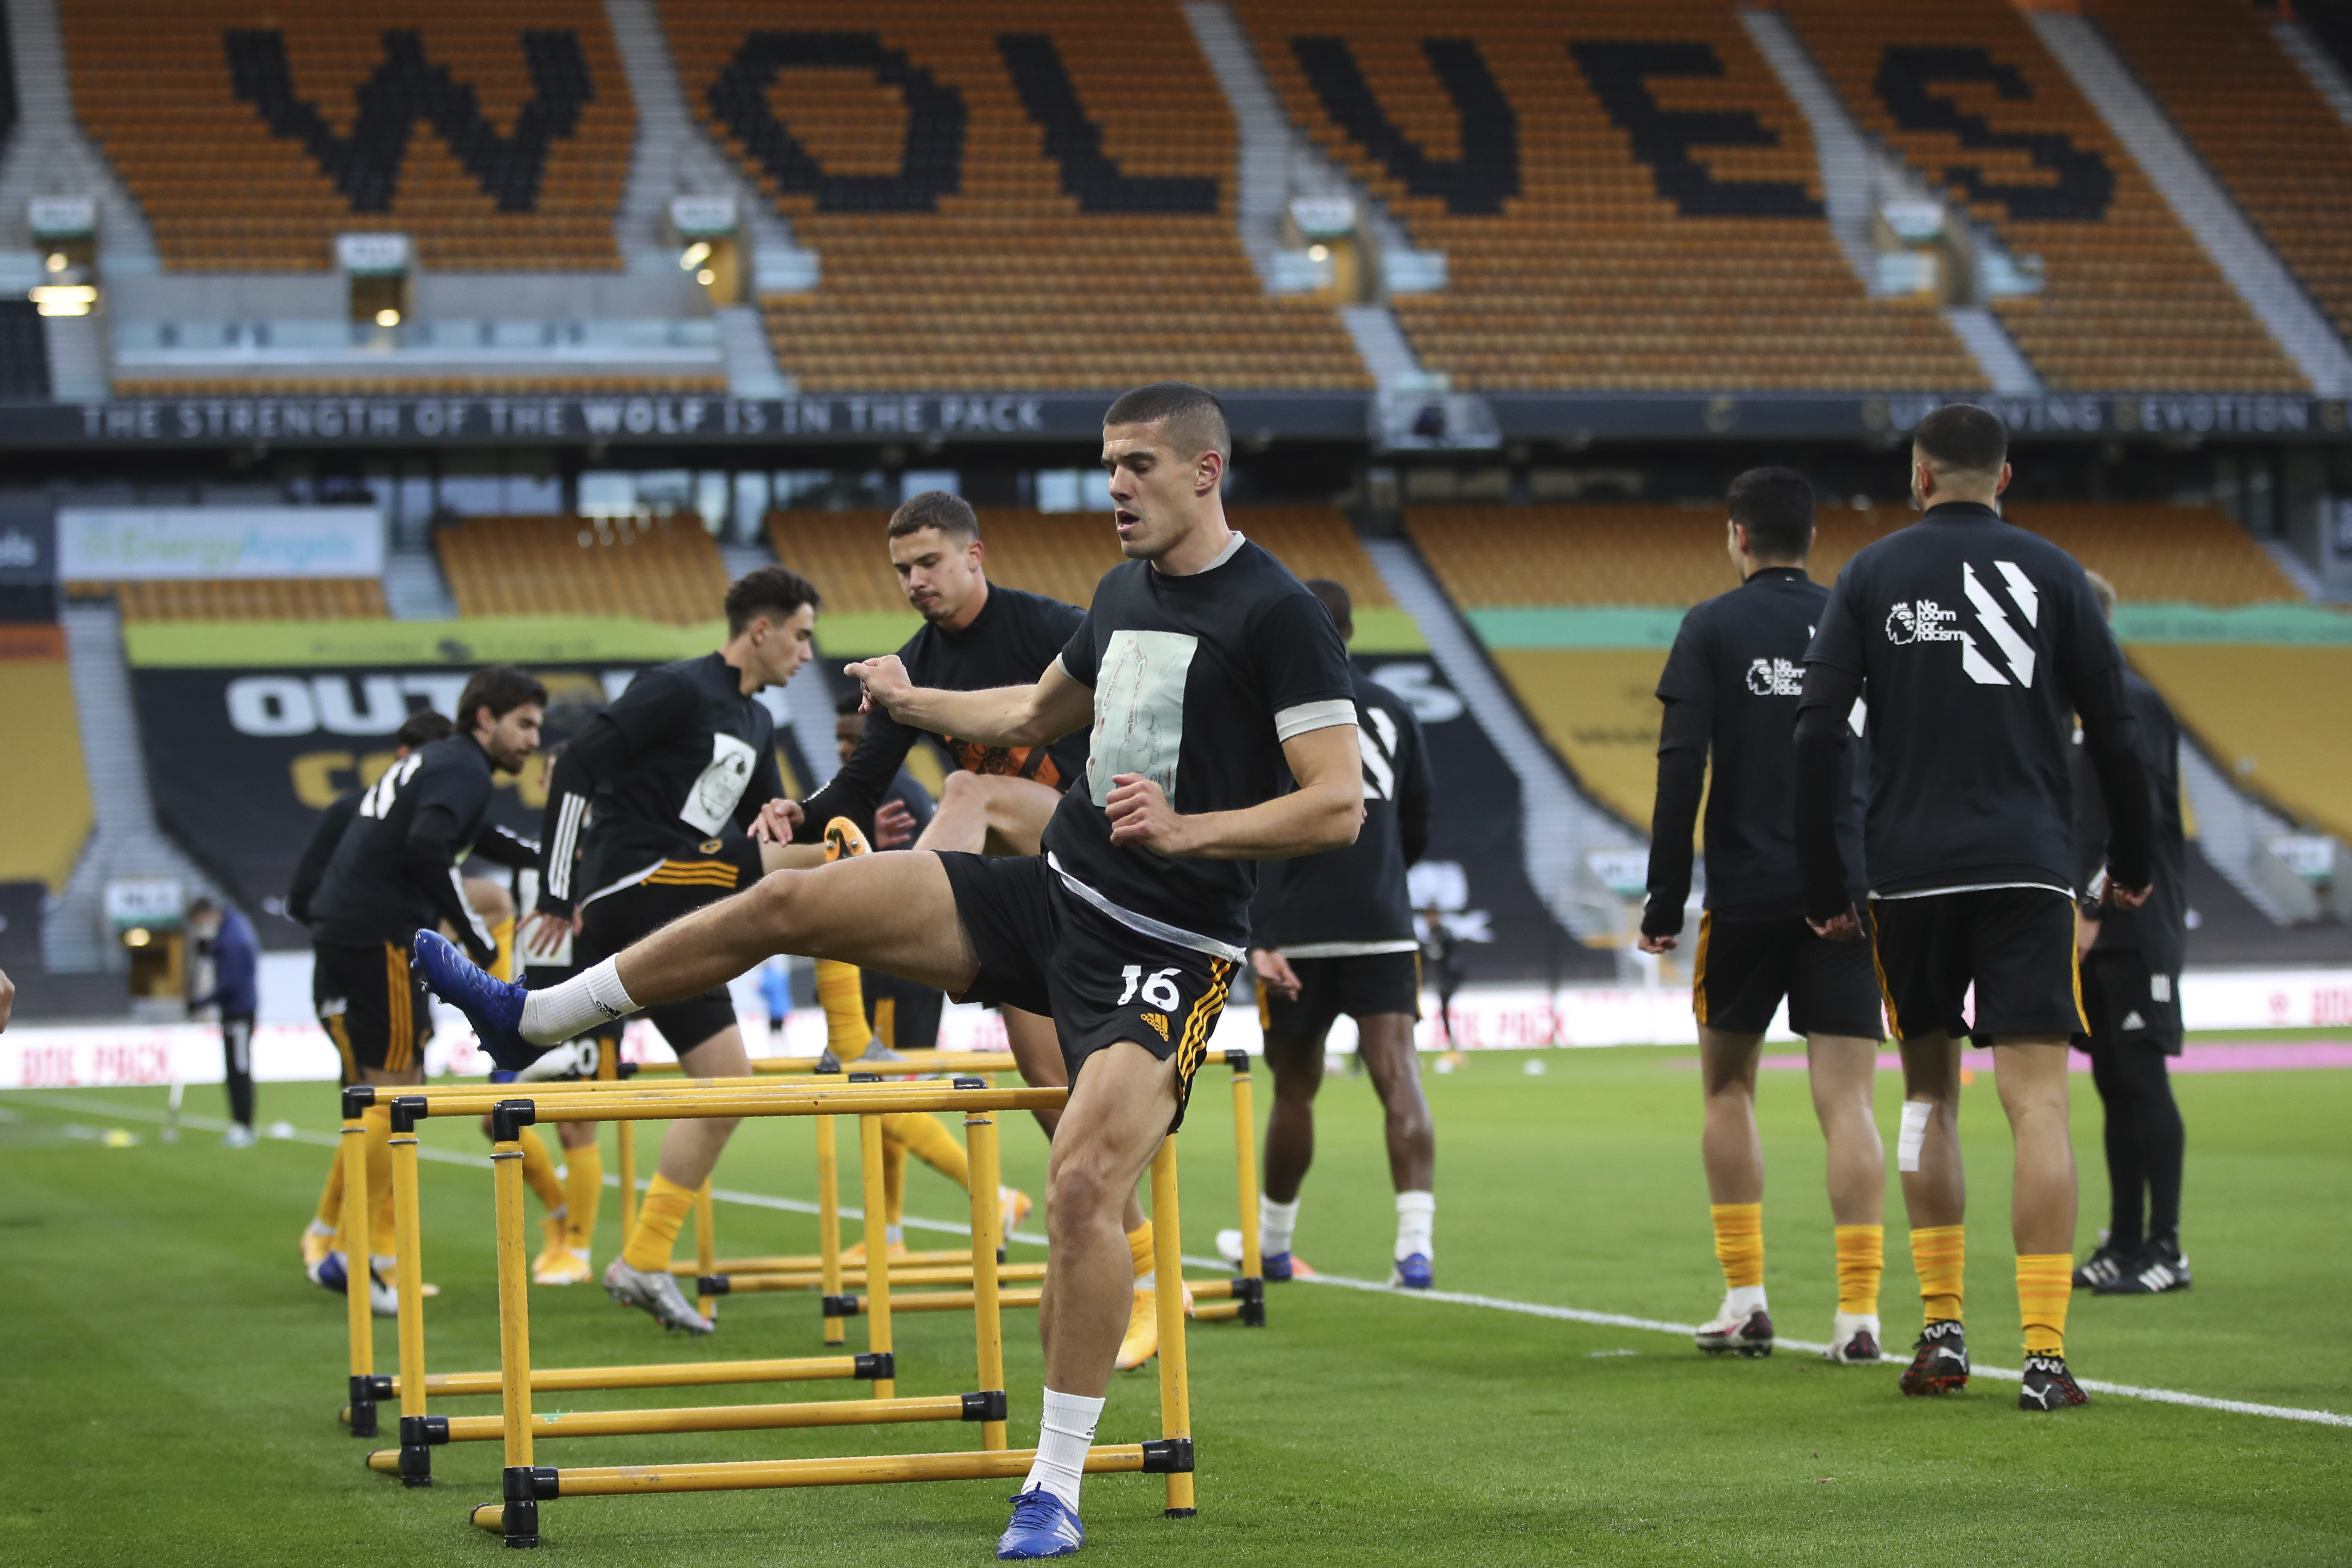 Wolverhampton Wanderers' Conor Coady during the English Premier League soccer match between Wolves and Newcastle United at Molineux Stadium in Wolverhampton, England, Sunday, Oct. 25, 2020. (Nick Potts/Pool Photo via AP)